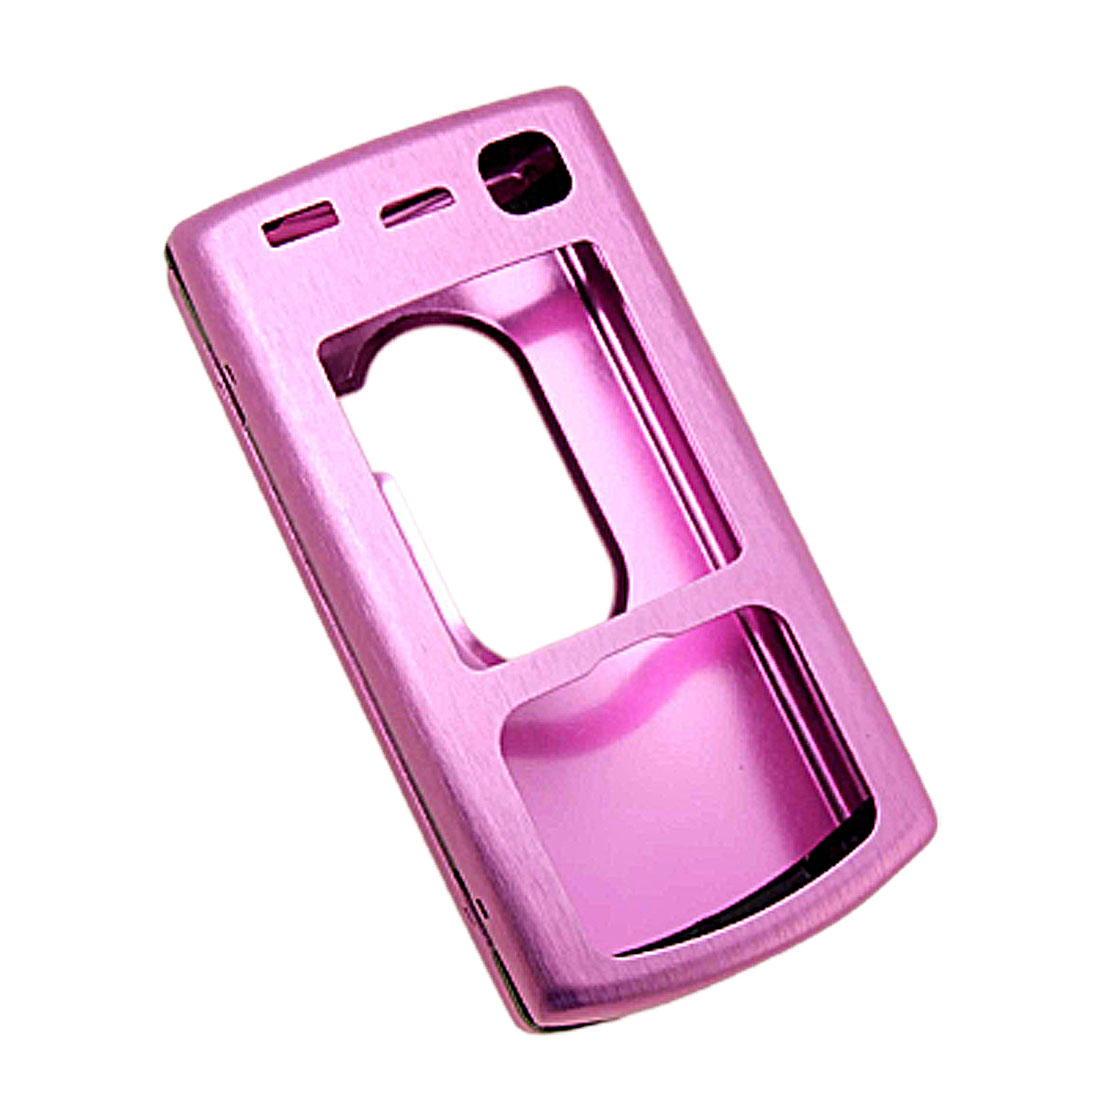 Aluminum Protector Hard Case with Hole for Nokia N70